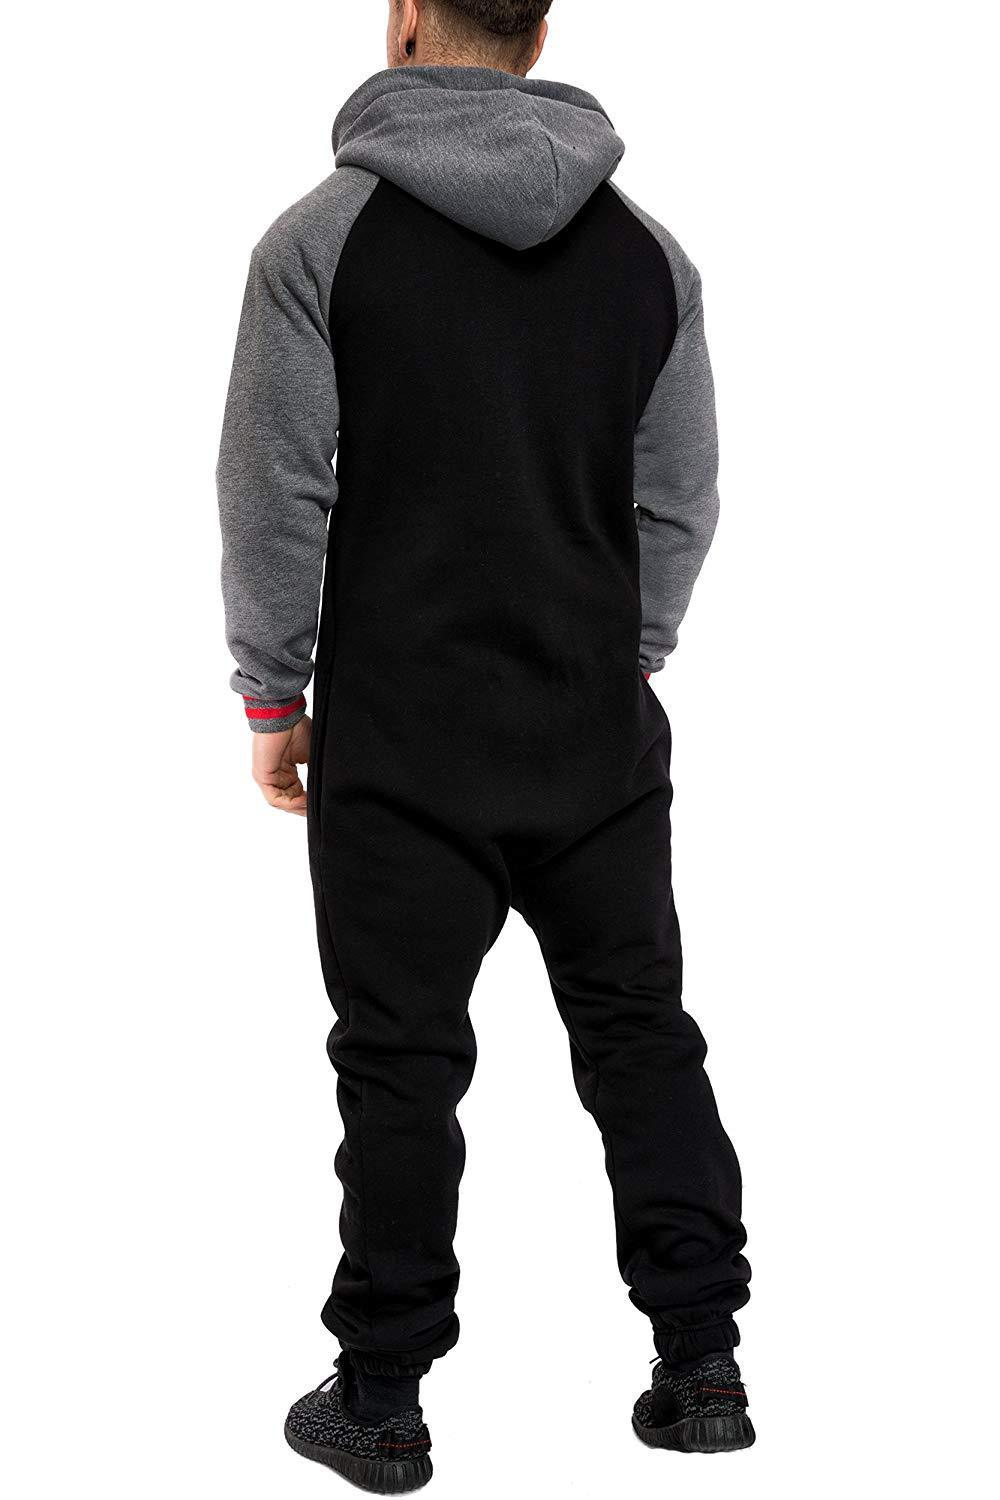 Casual Autumn Hooded Tracksuit Jumpsuit Long Pants Romper For Male Mens Fleece warm Overalls Sweatshirts Male Streetwear X9126 24